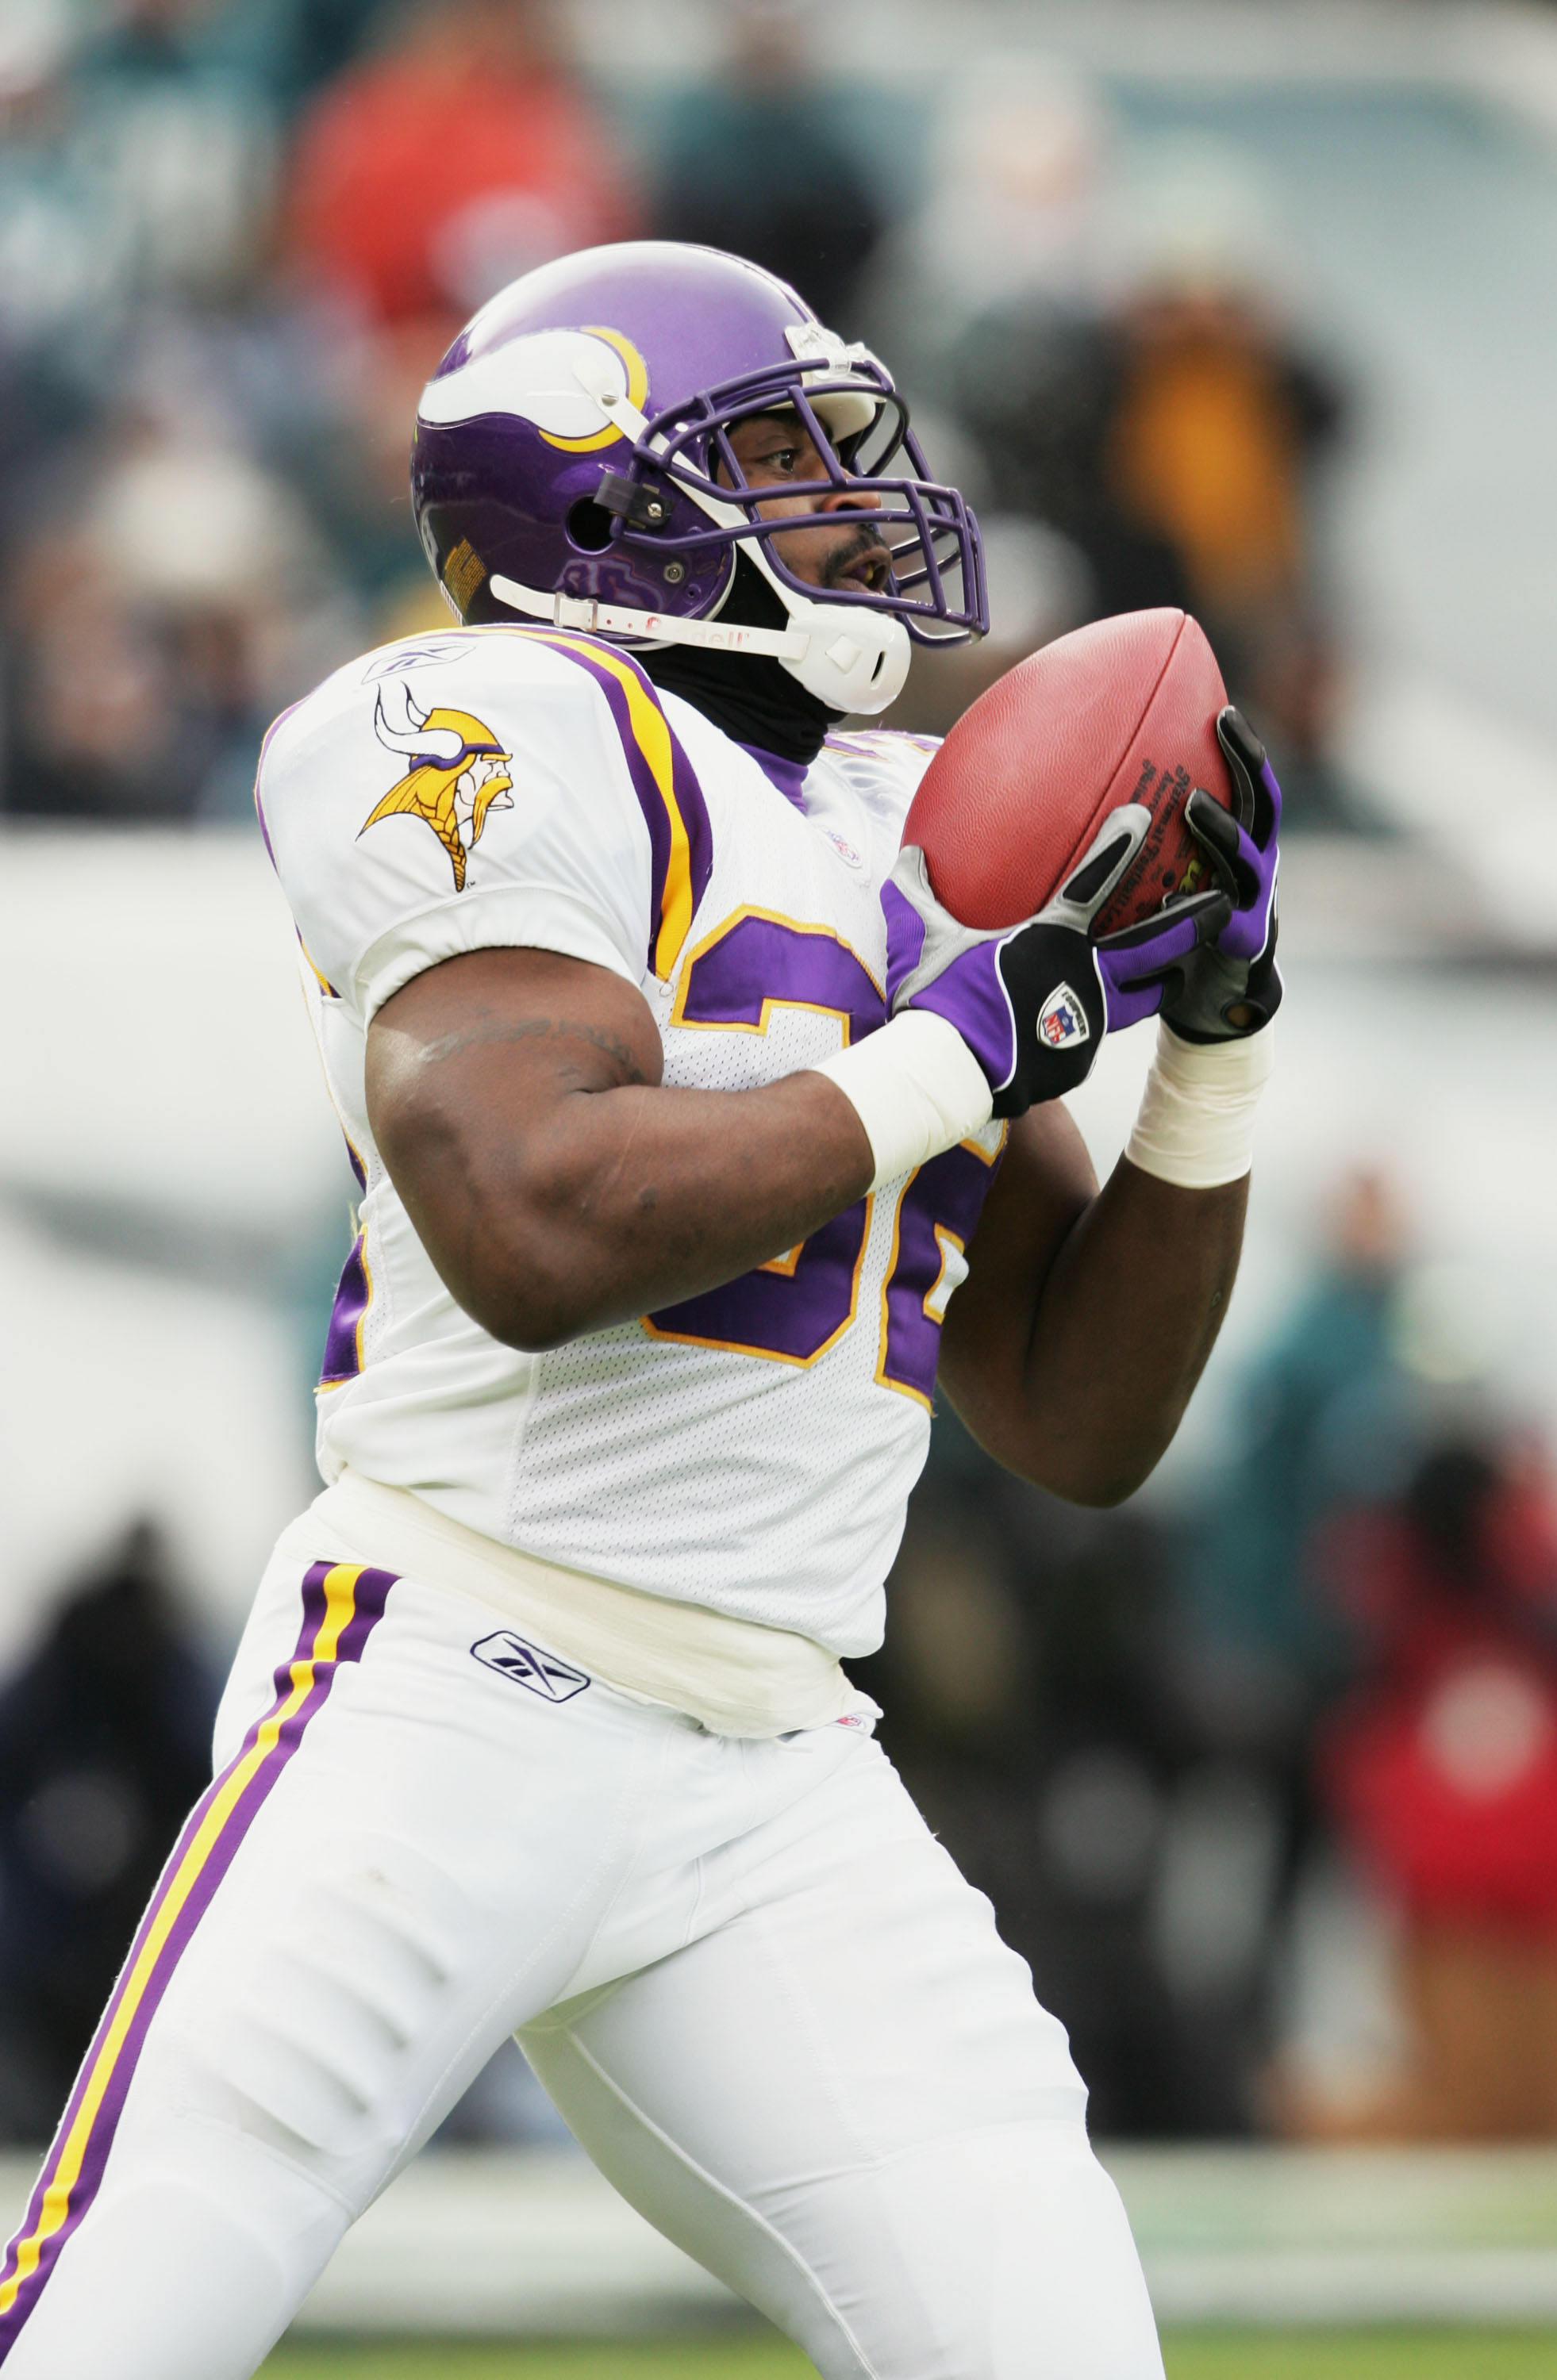 PHILADELPHIA - JANUARY 16:  Running back Onterrio Smith #32 of the Minnesota Vikings catches a pass against the Philadelphia Eagles in an NFC divisional playoff game at Lincoln Financial Field on January 16, 2005 in Philadelphia, Pennsylvania. The Eagles